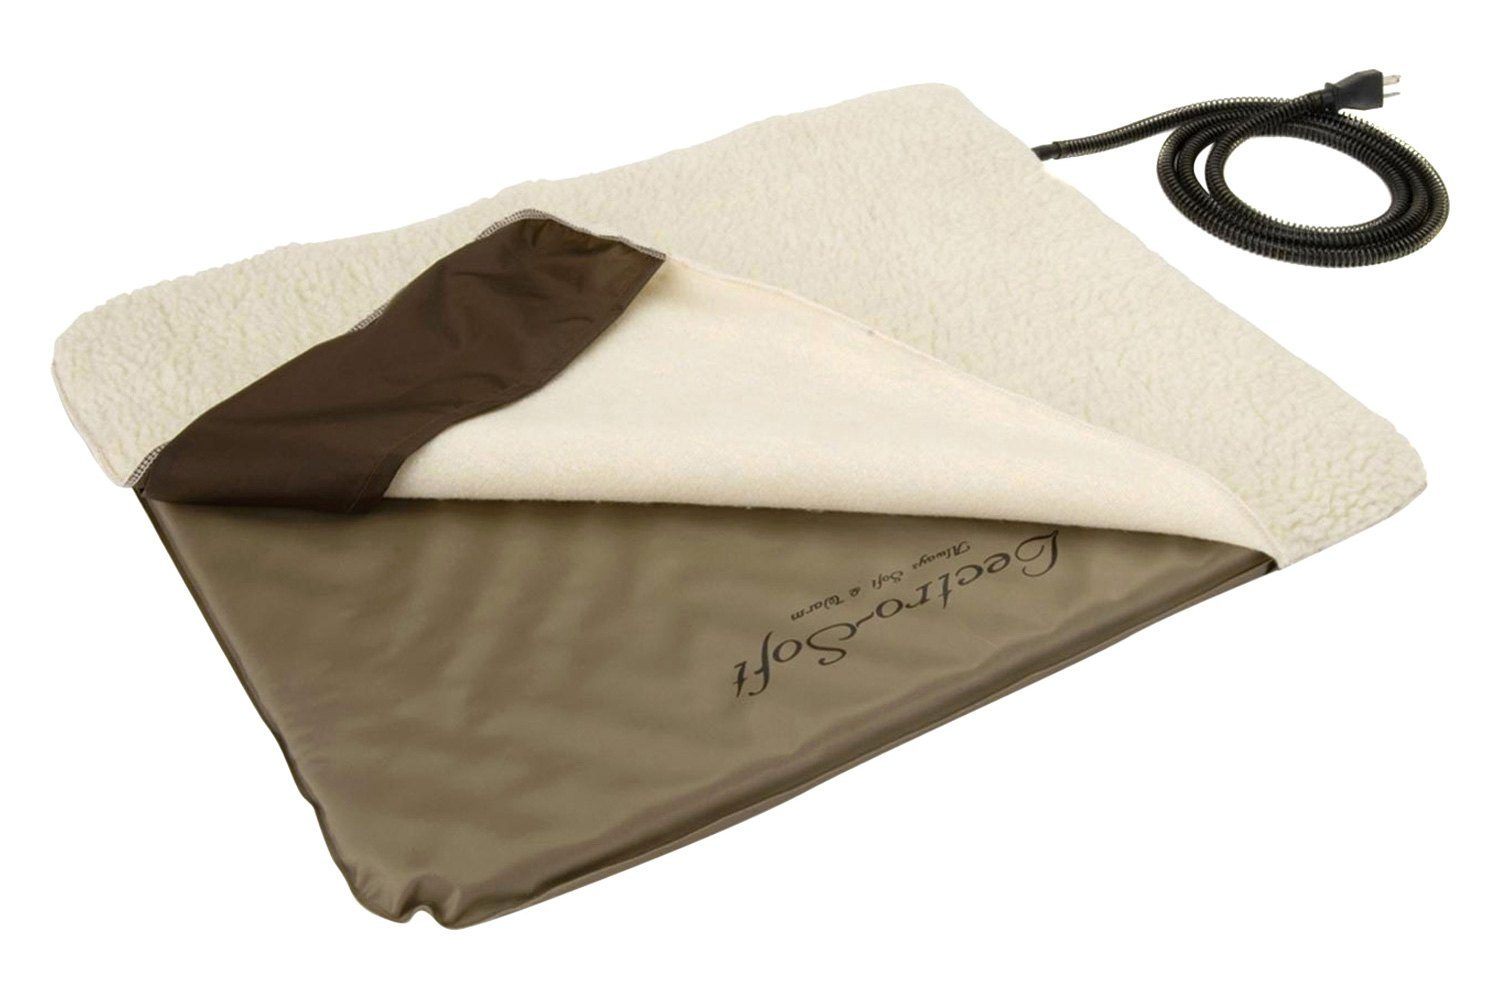 K H Lectro Soft Heated Pet Bed Reviews